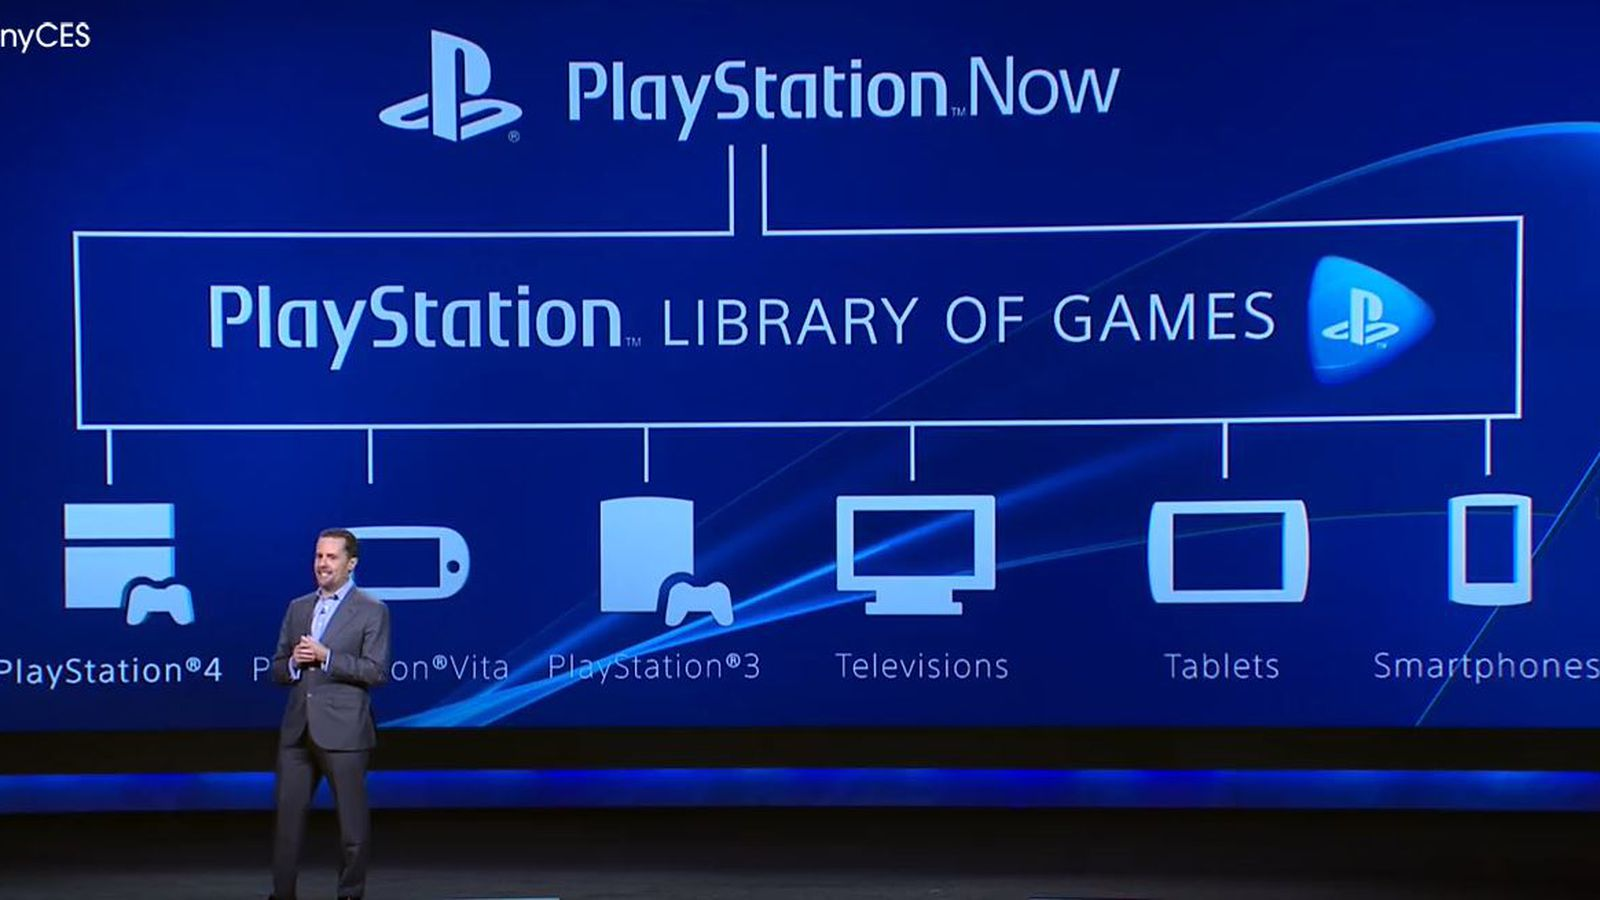 PS4 games are finally coming to PlayStation Now